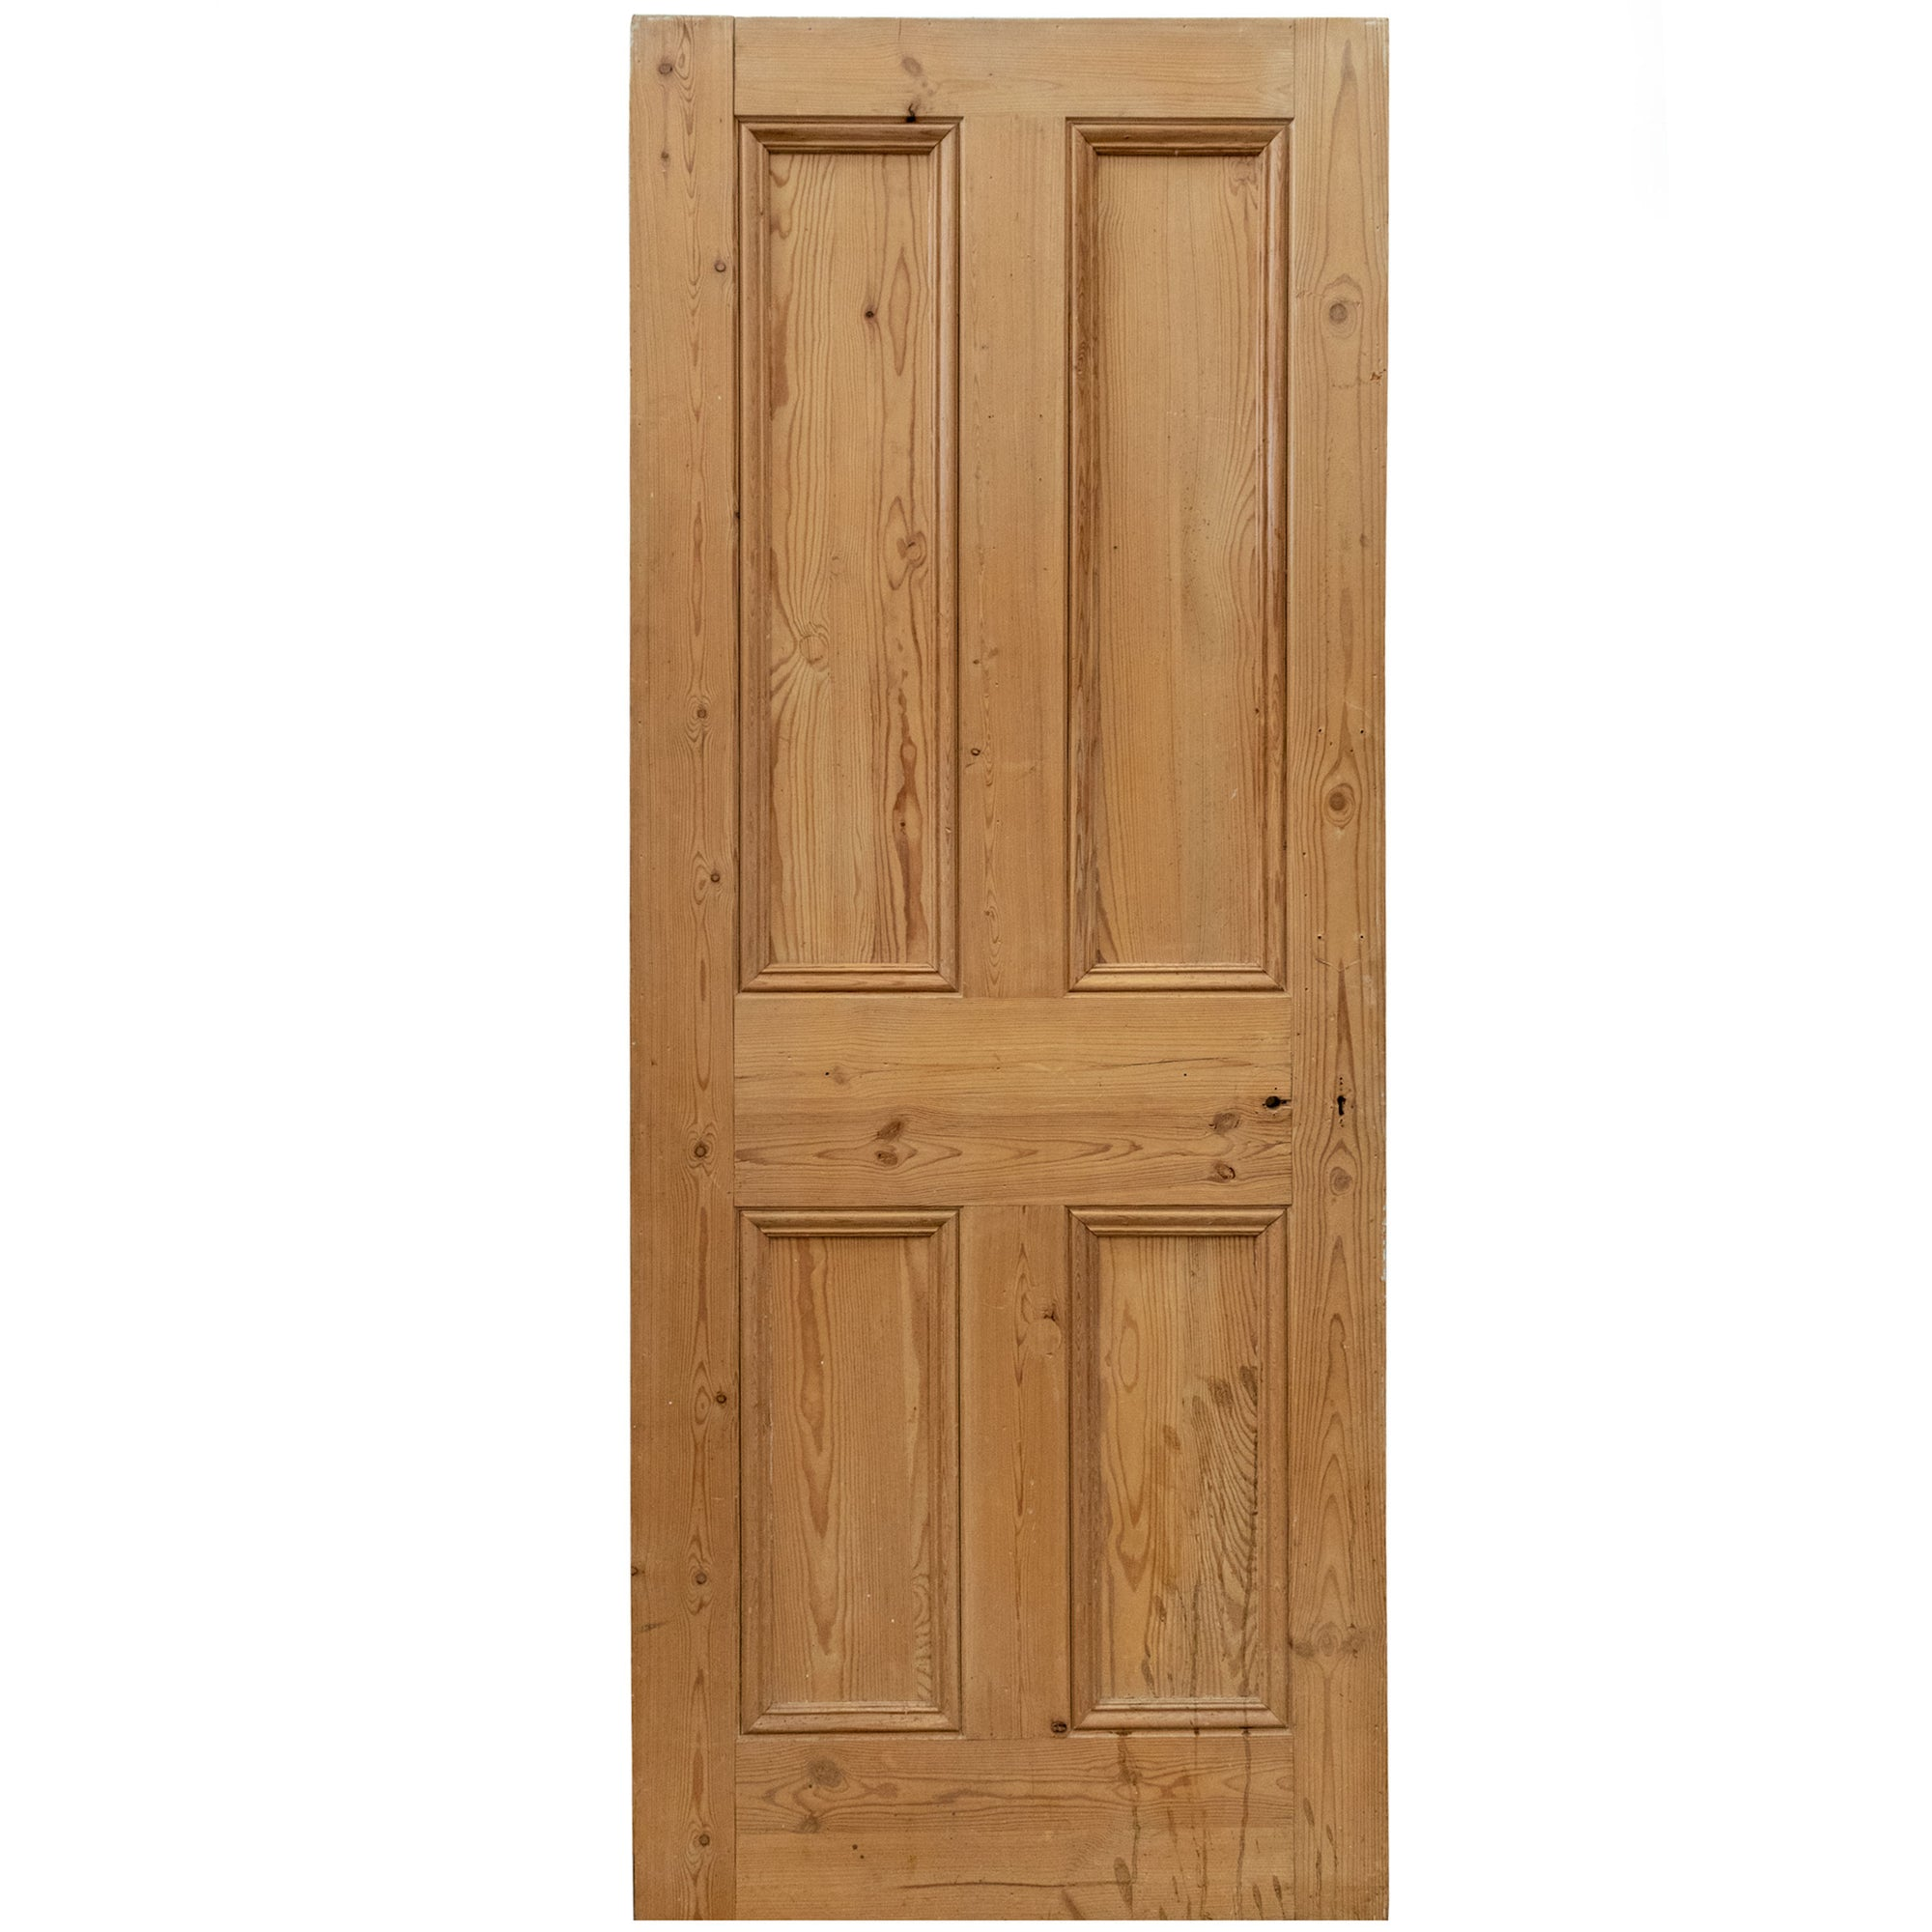 Victorian 4 Panel Door - 196cm x 75.5cm - architectural-forum